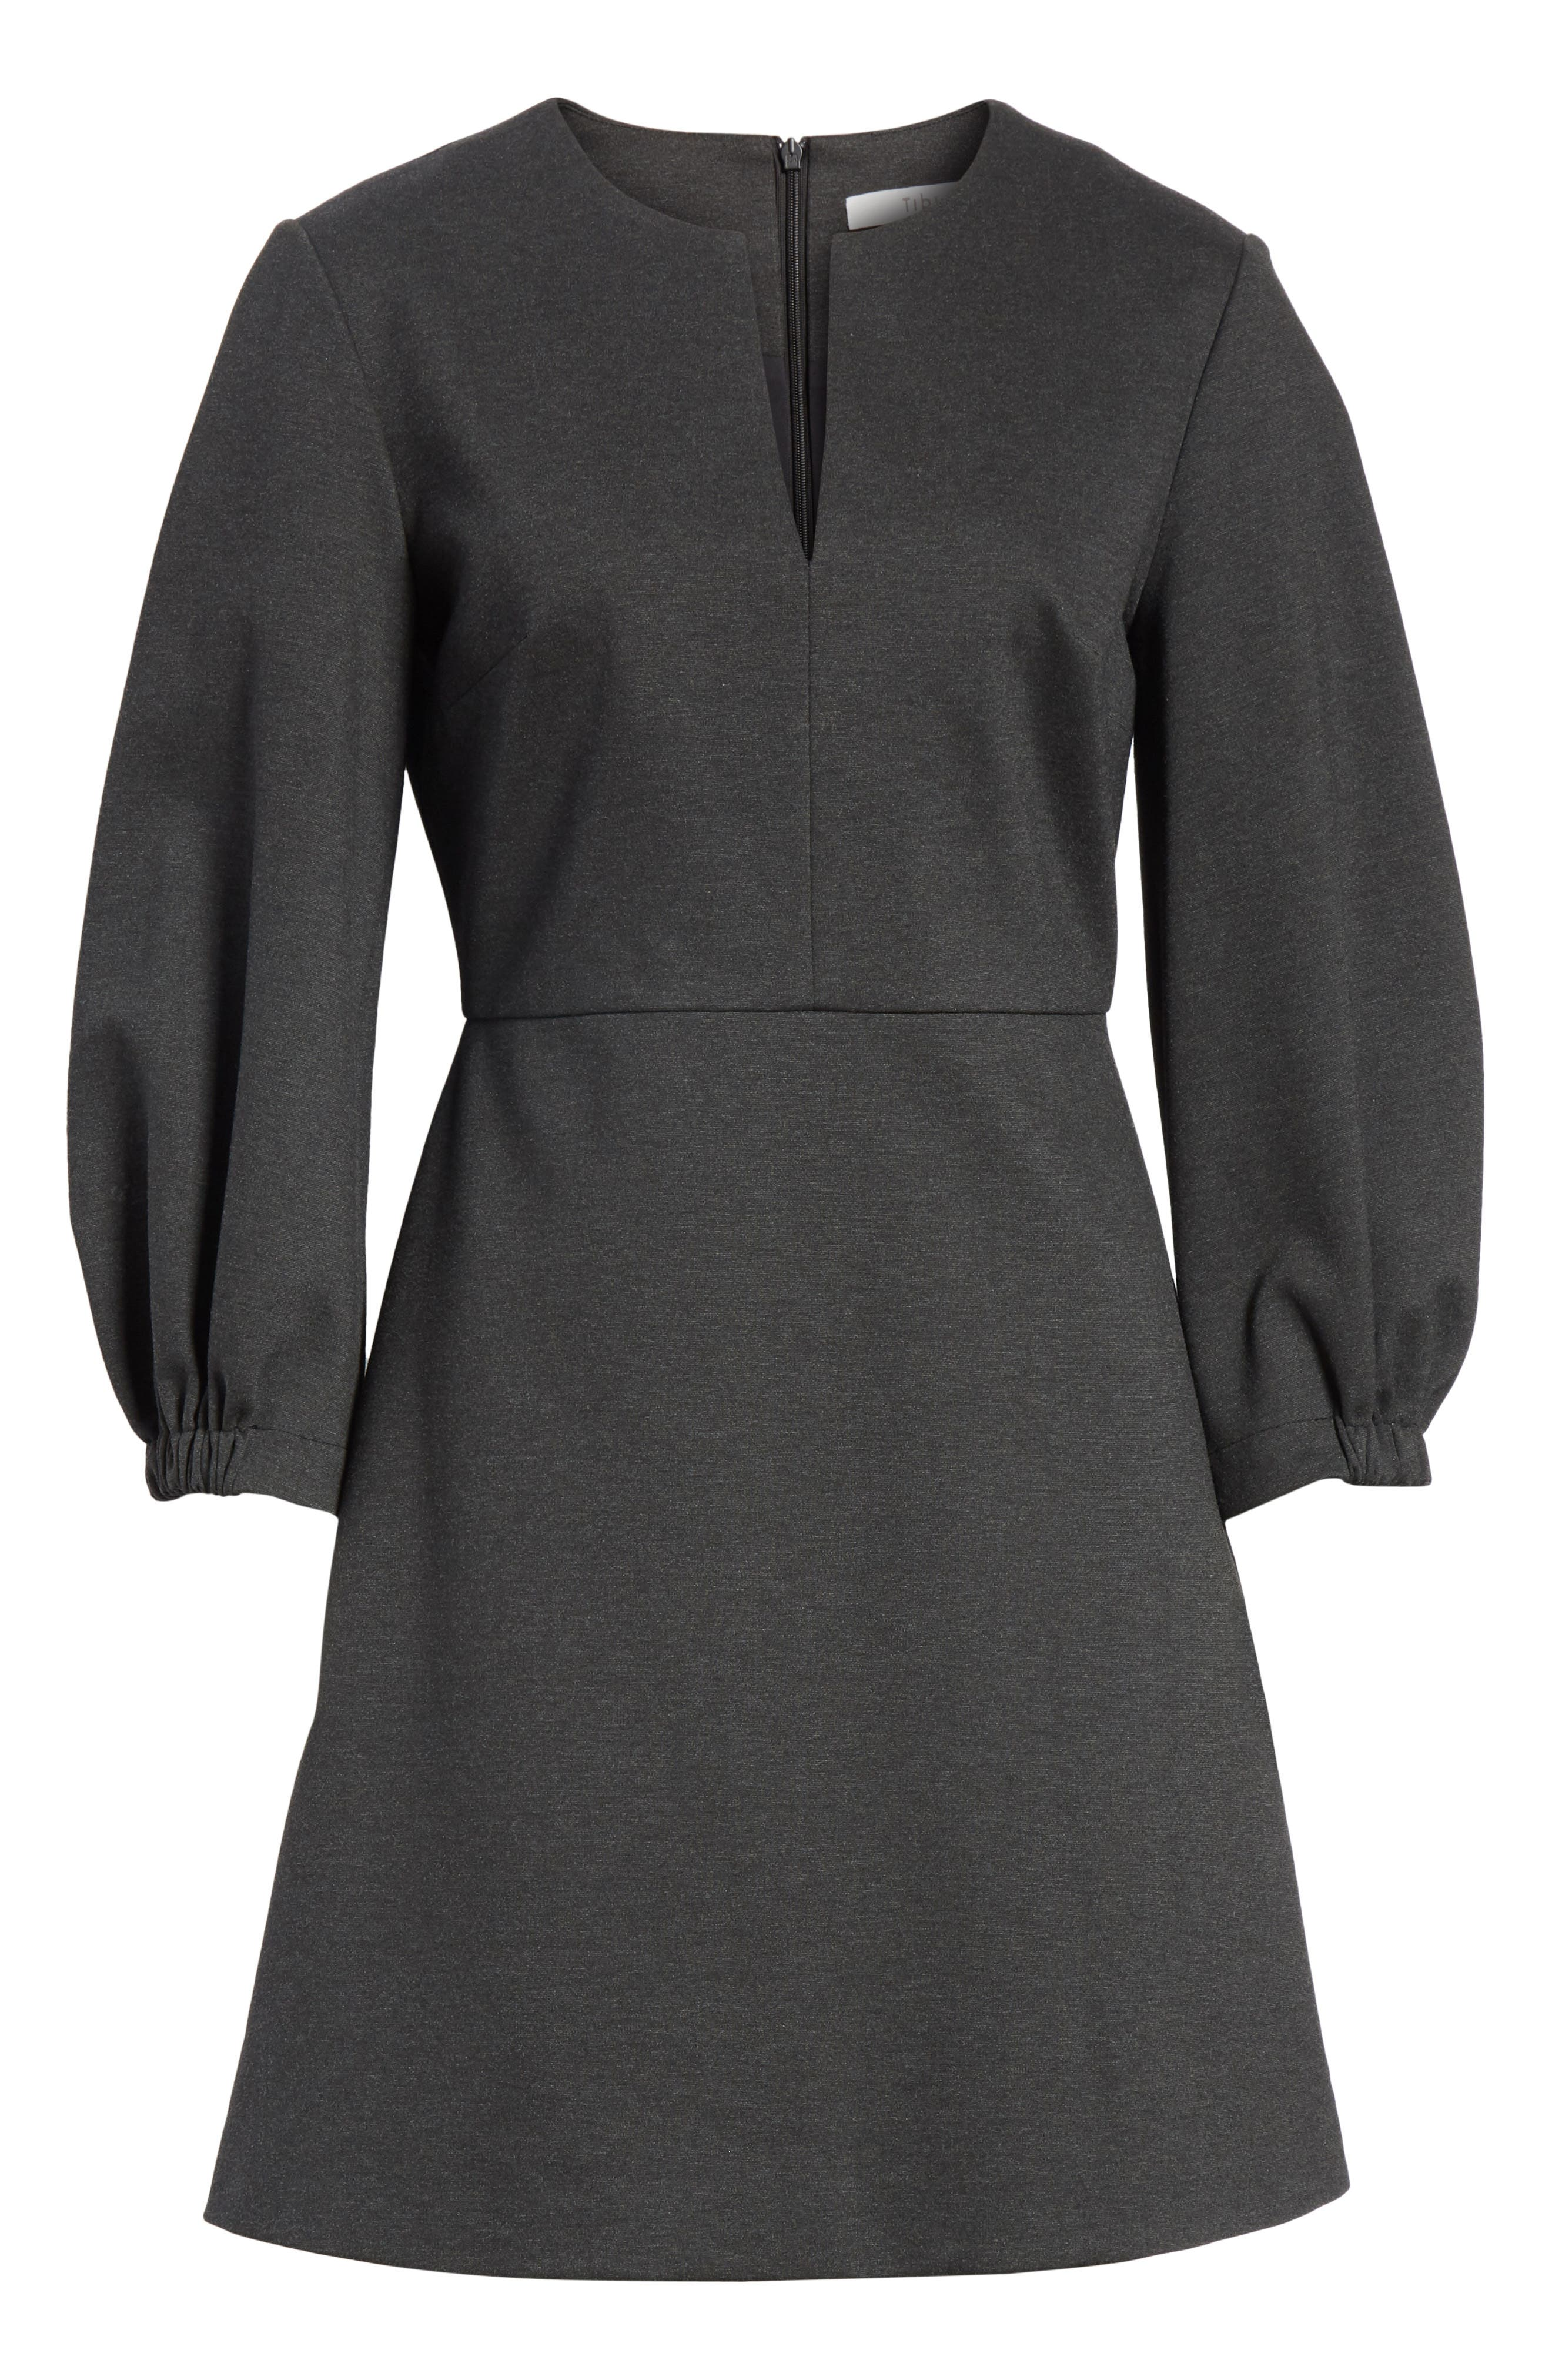 Bond Stretch Knit Puff Sleeve Dress,                             Alternate thumbnail 6, color,                             033